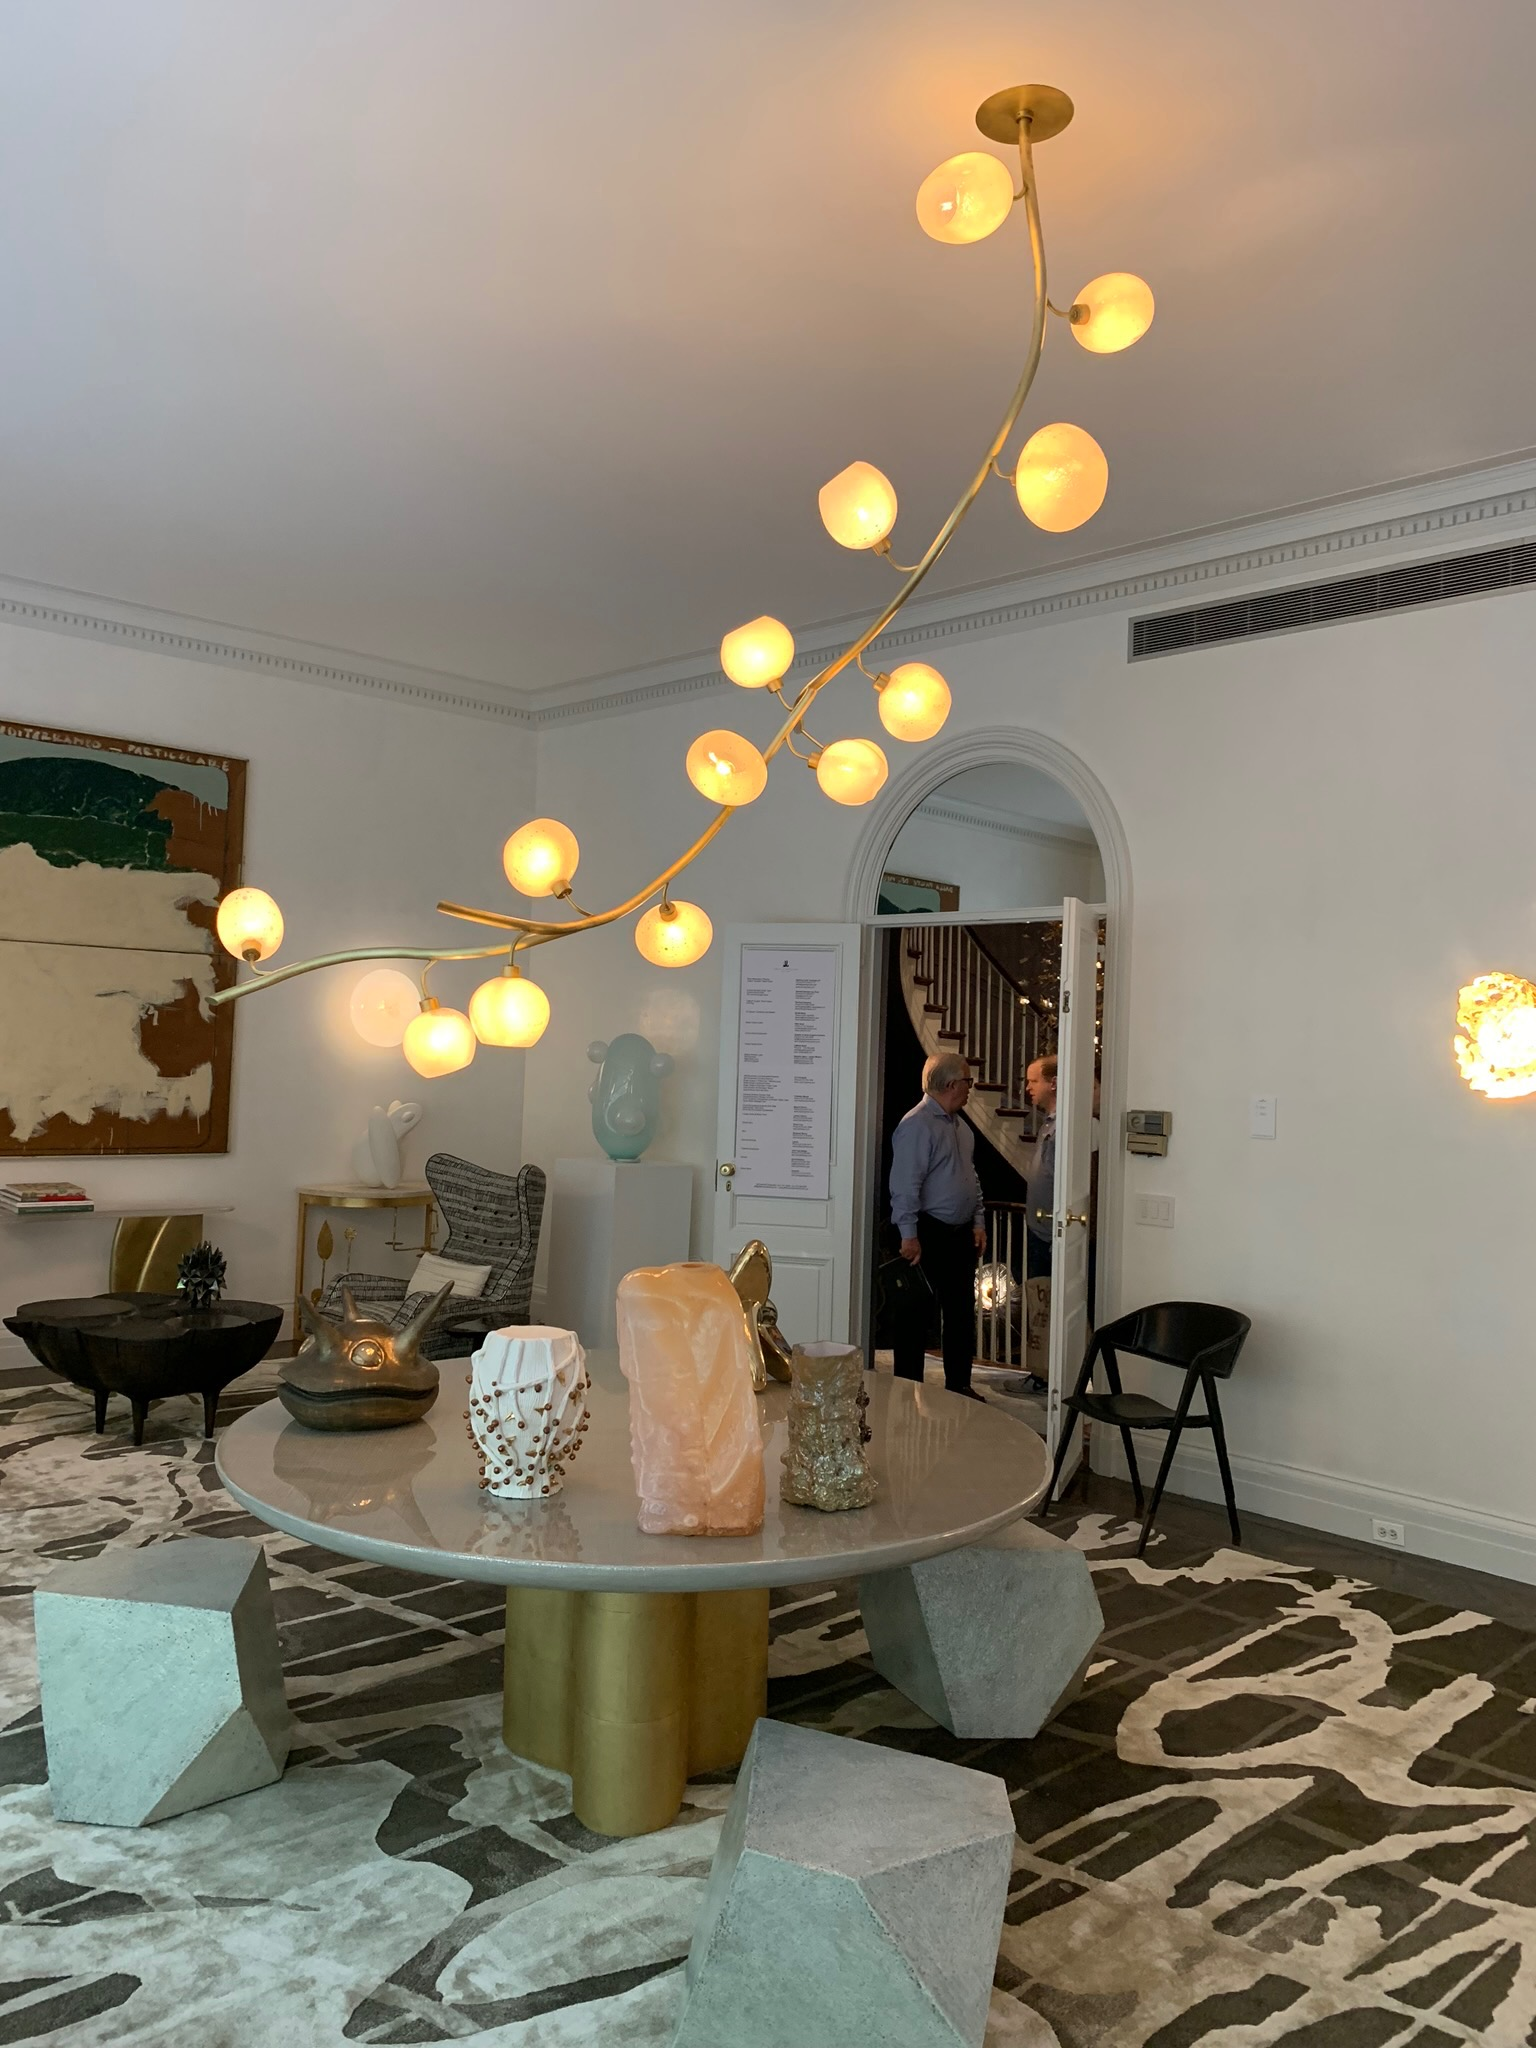 "Jeff Zimmerman ""Vine"" Illuminated Sculpture by  R & Company  in  Jeff Lincoln Art + Design's  Main Living Room."